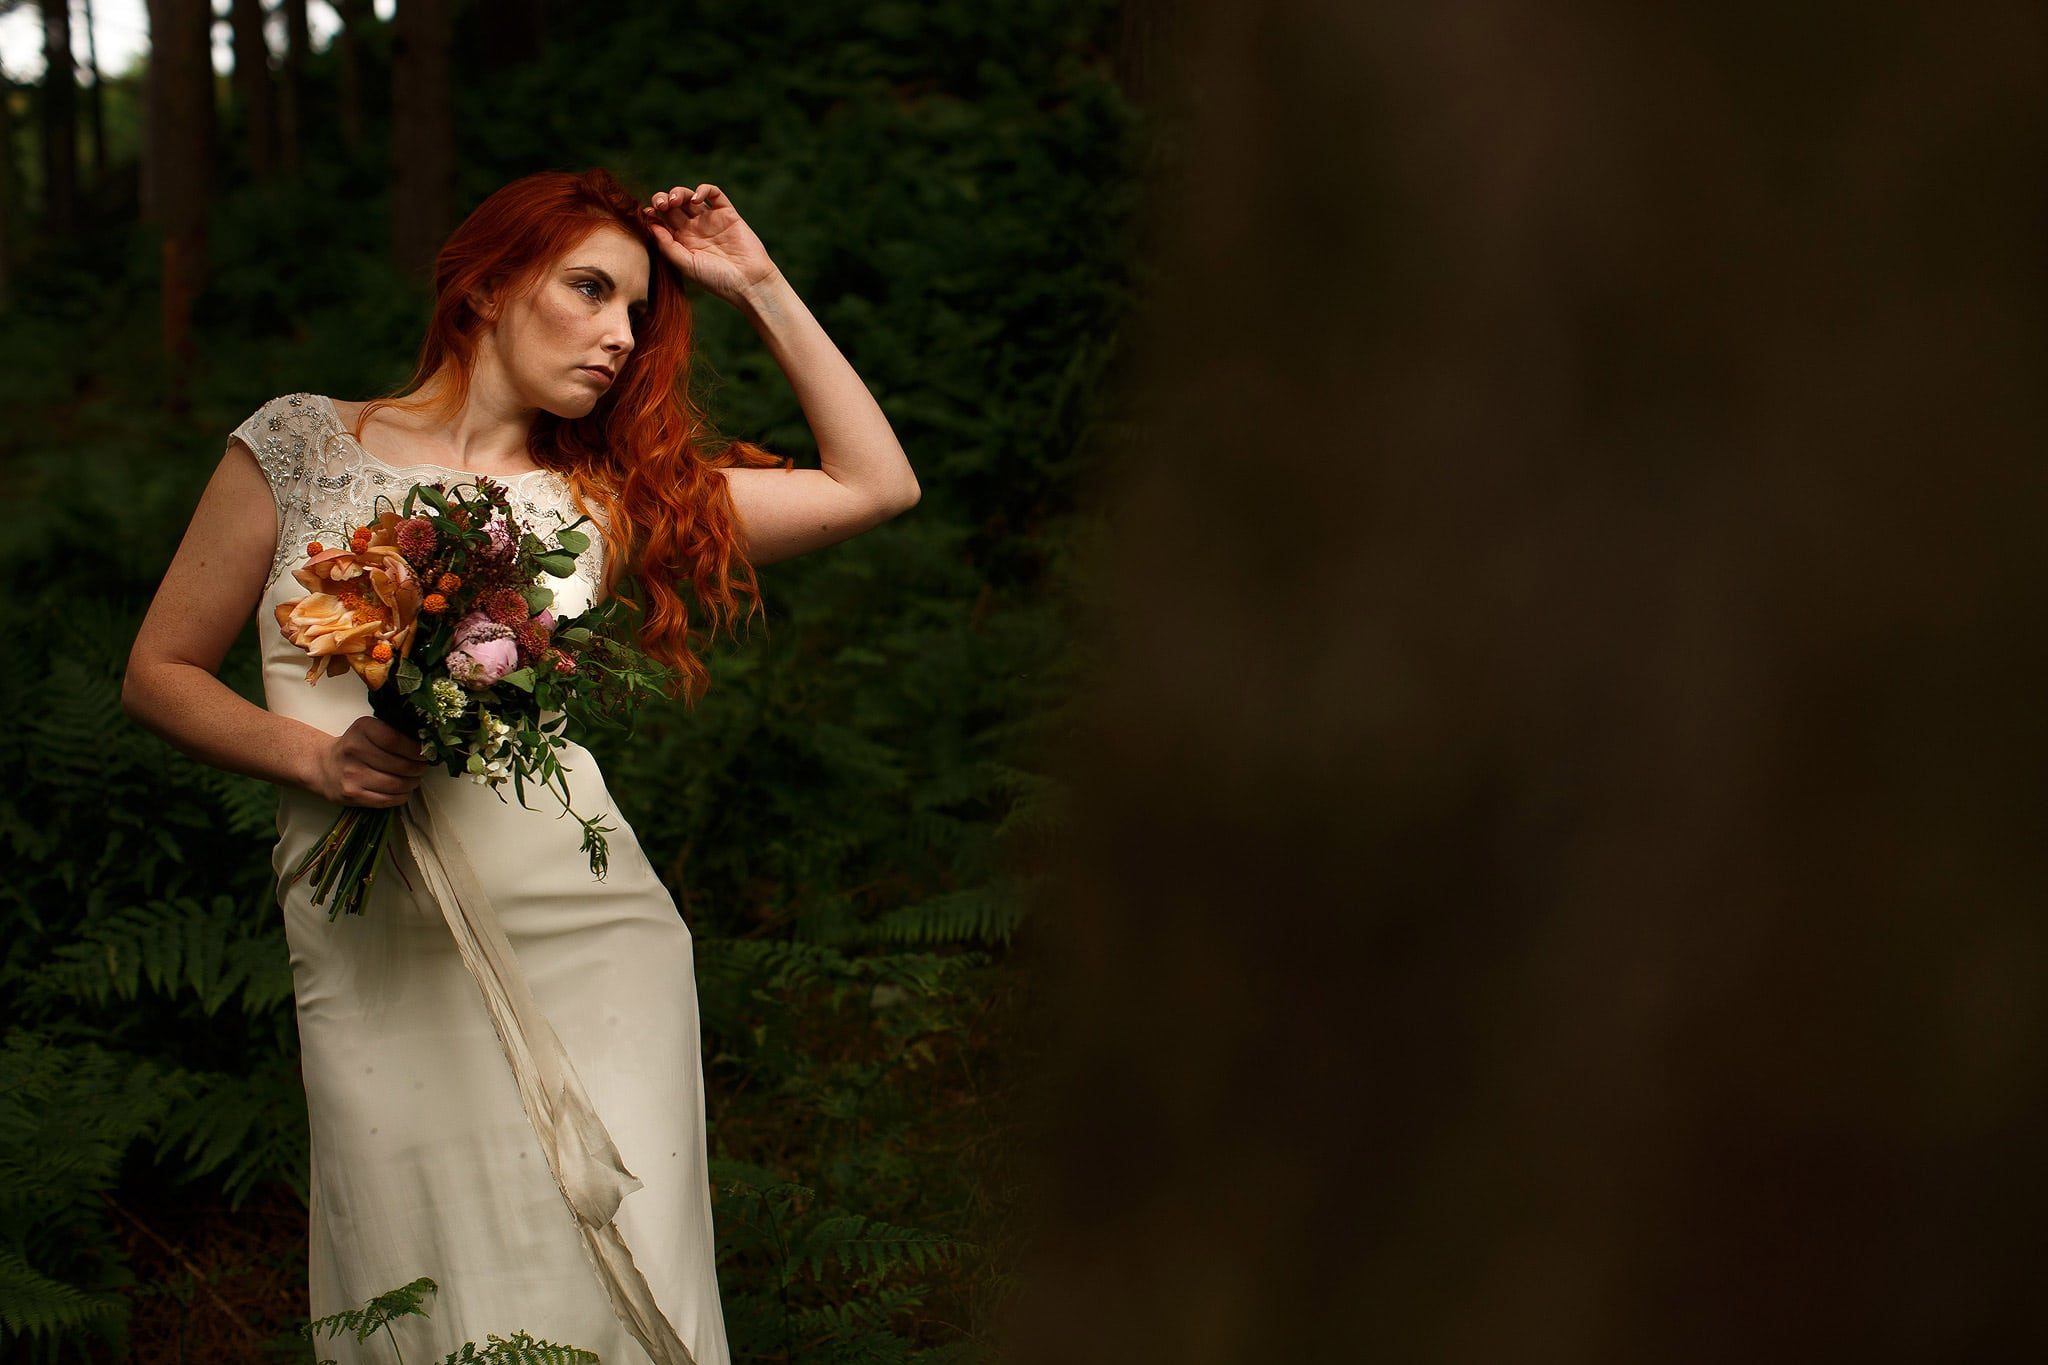 Red head bride wearing silk cream monsoon wedding dress in the woodland. Holding a DIY wedding bouquet.